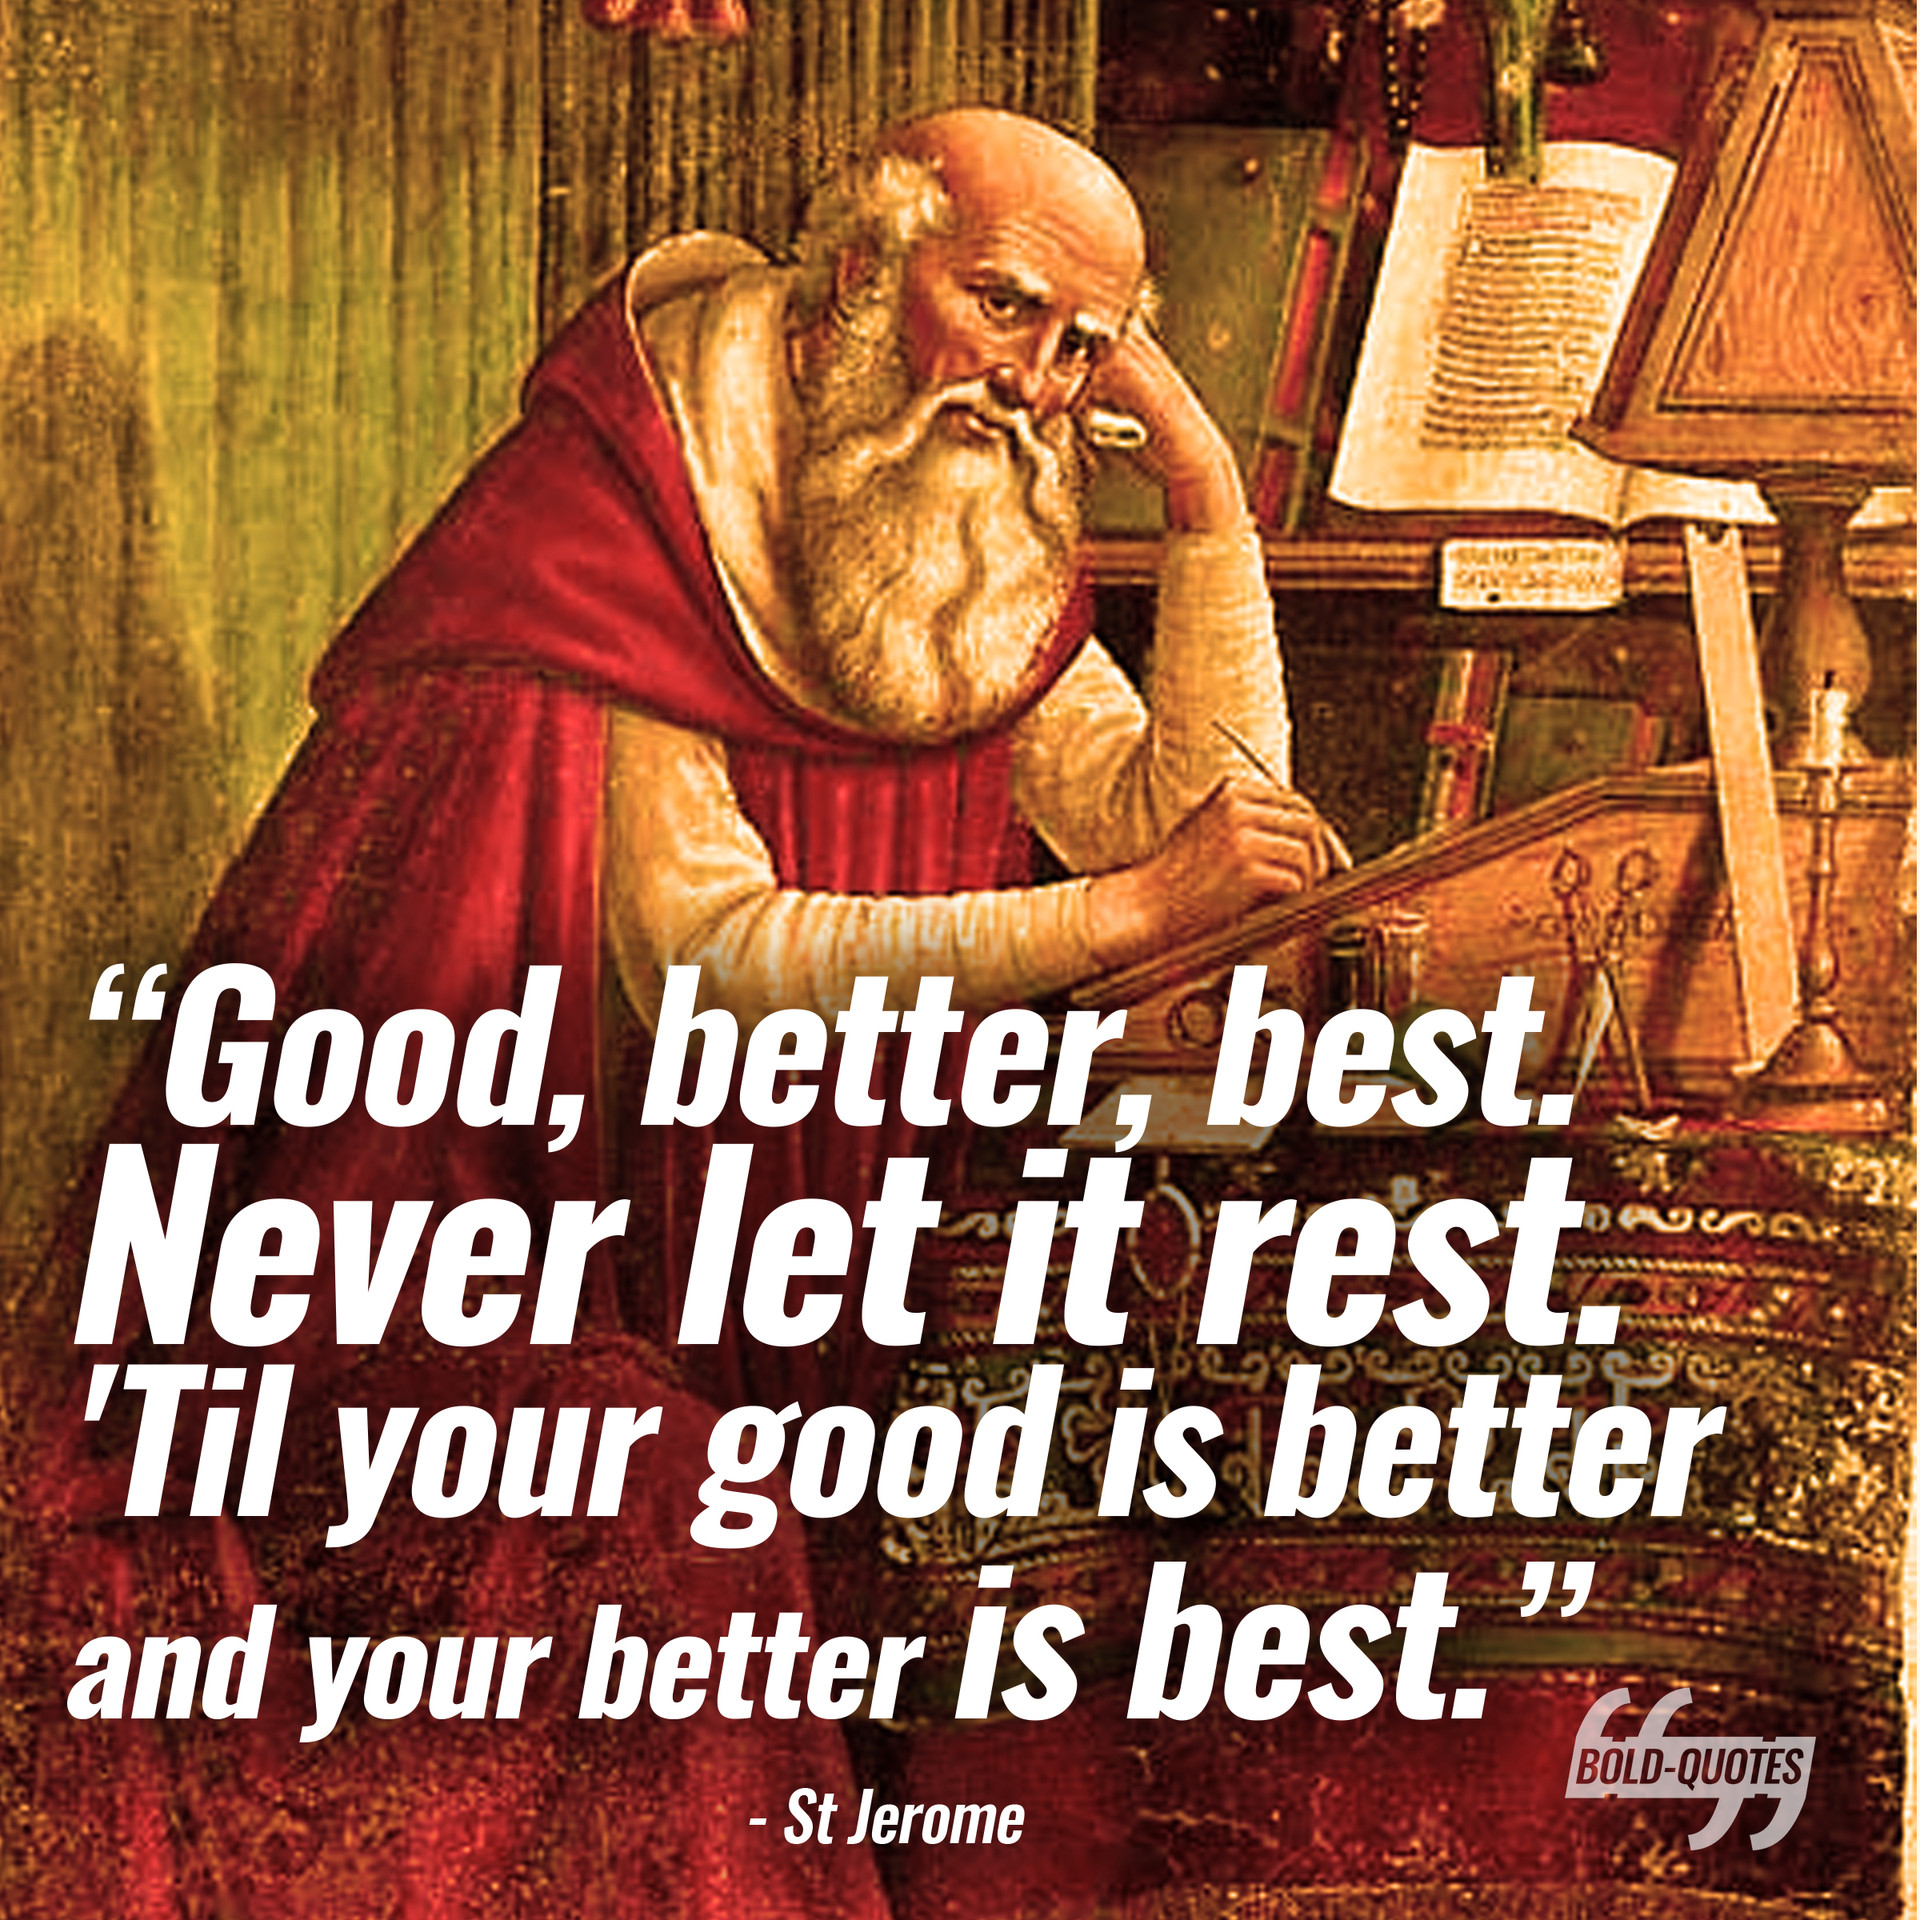 Bold Quotes - St Jerome.jpg